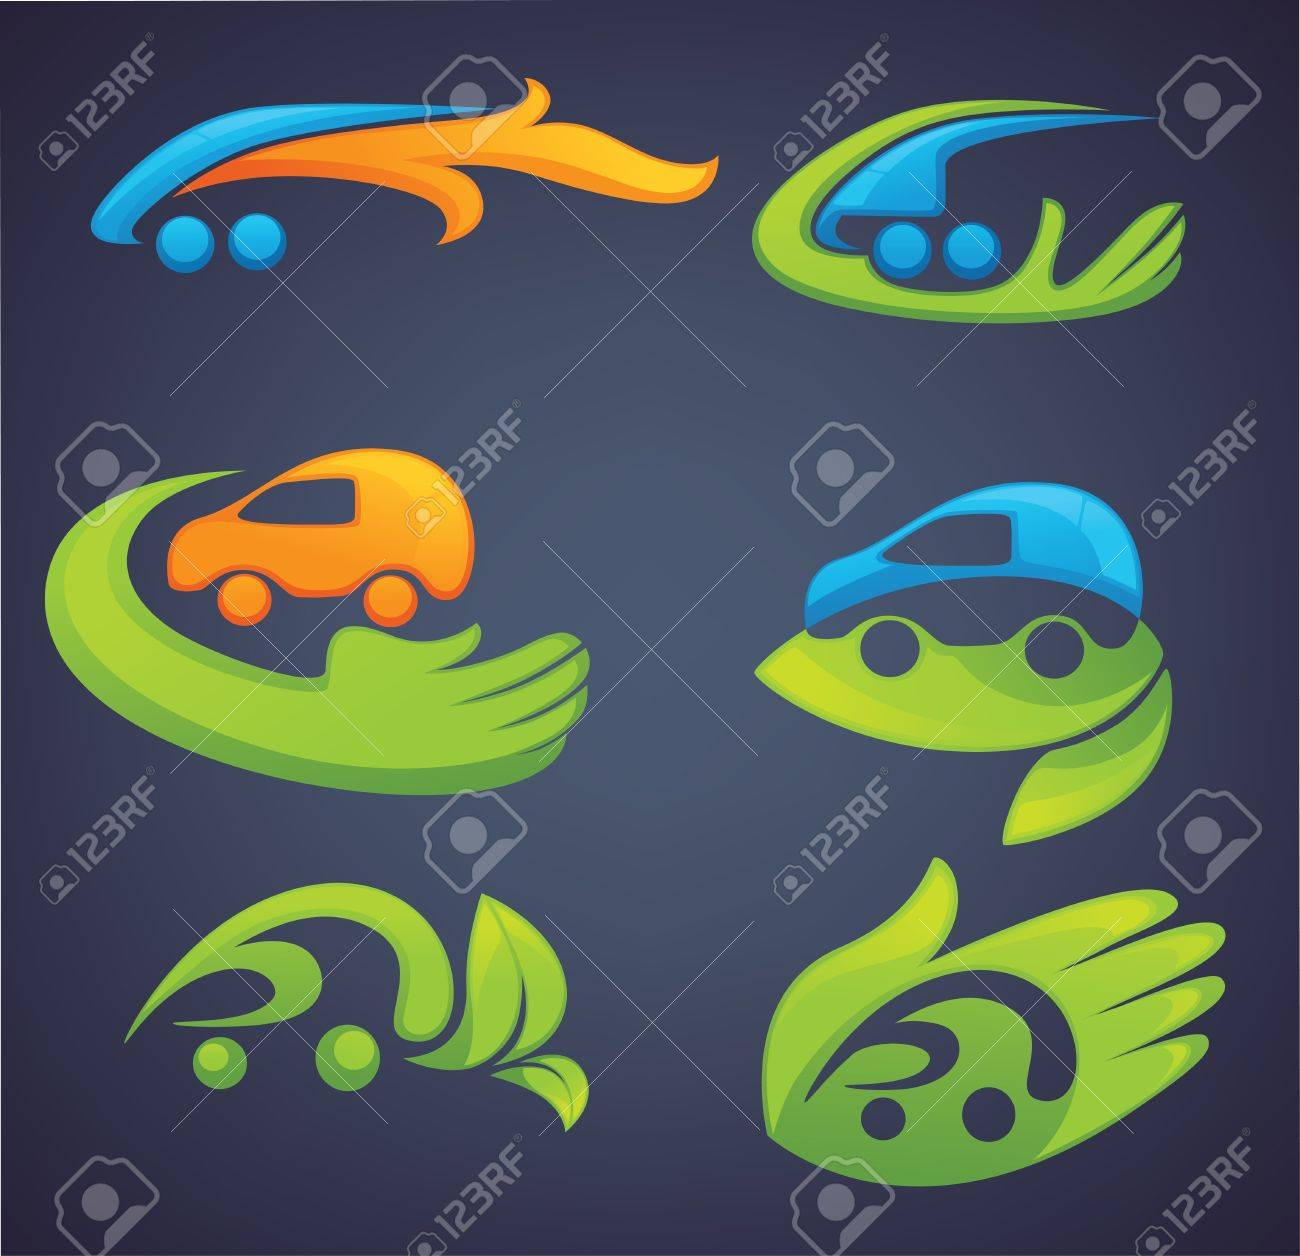 ecological transport, vector collection of icons and symbols Stock Vector - 16262494